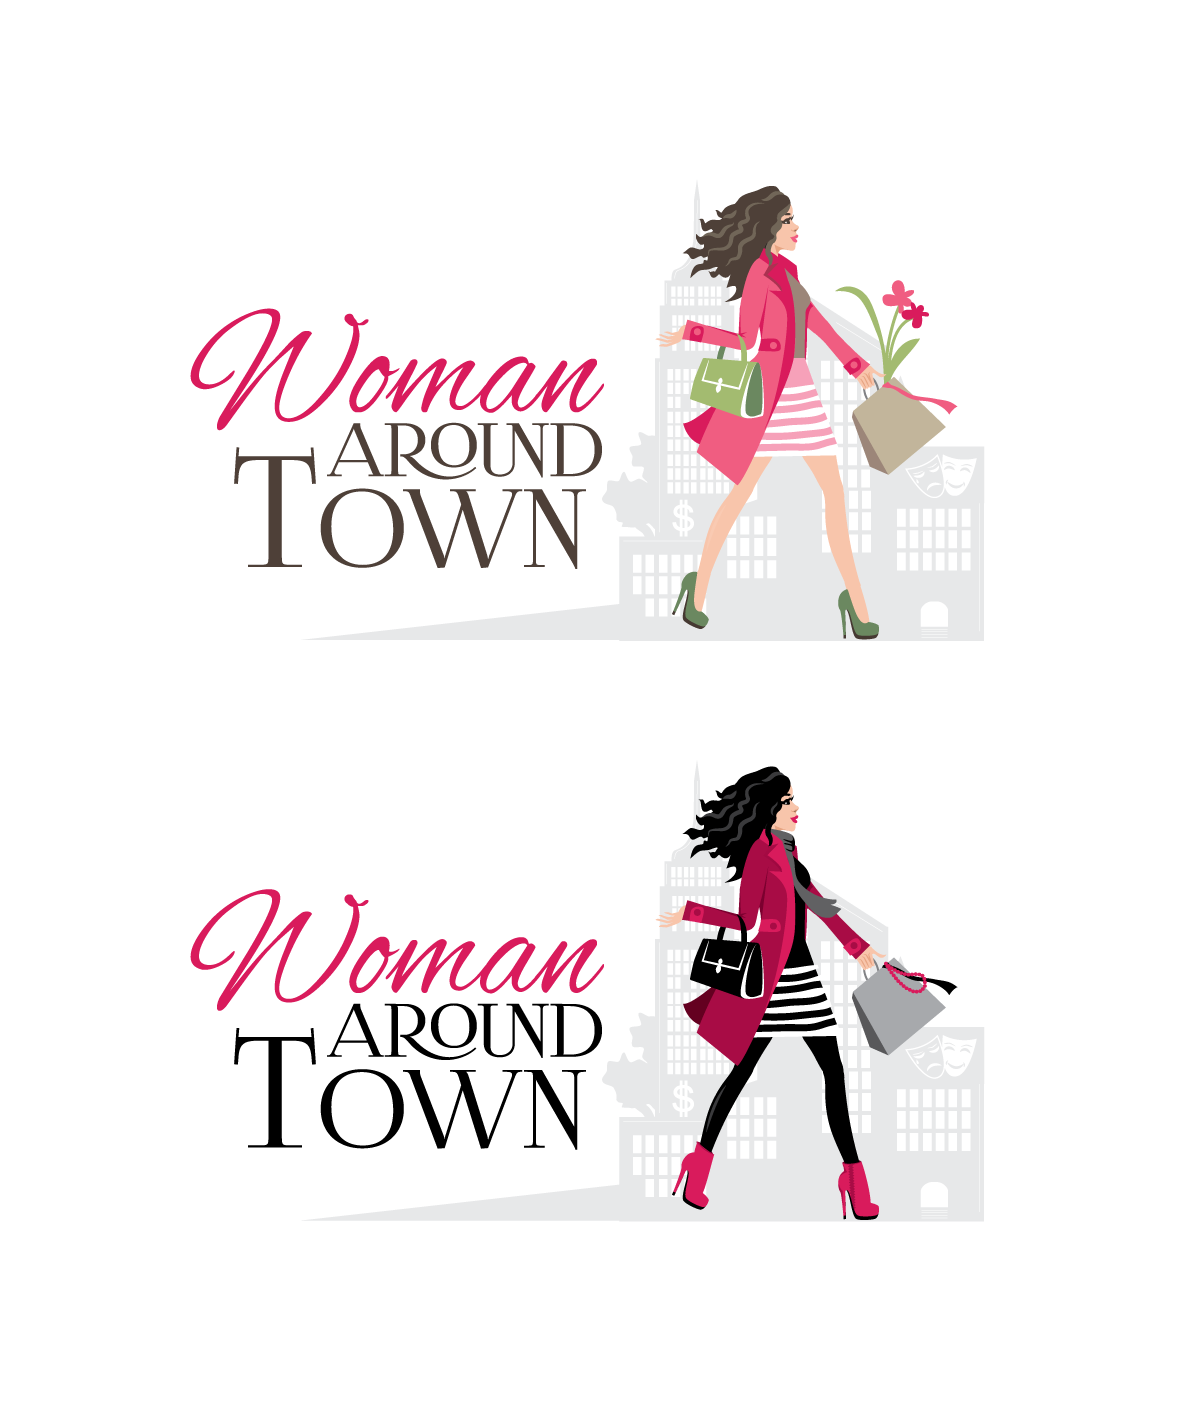 Design a logo for the award winning website Woman Around Town.